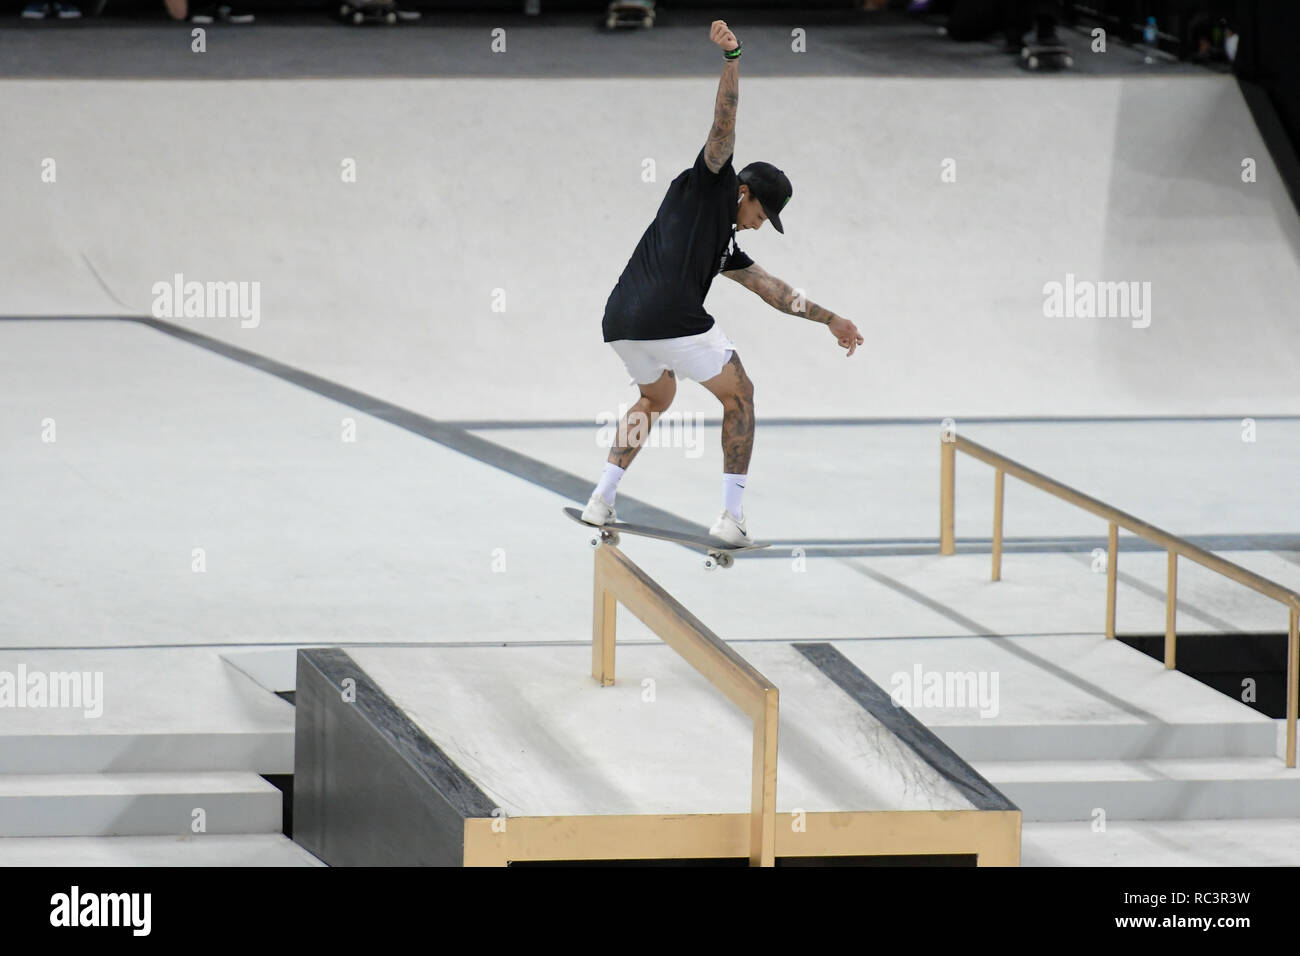 RJ - Rio de Janeiro - 01/13/2019 - World Championship SLS World Championship in Rio de Janeiro - Finals - Nyjah Huston competitor performs maneuver during women's final of the Brazilian stage of the Street League World Championship, held at Arena Carioca 1, Barra da Tijuca West Zone of Rio de Janeiro. Rio receives until Sunday stage of the Street League, the largest Skateboard Street championship in the world. The sport gained importance in the national sports arena after it became an Olympic sport. Photo: Thiago Ribeiro / AGIF - Stock Image